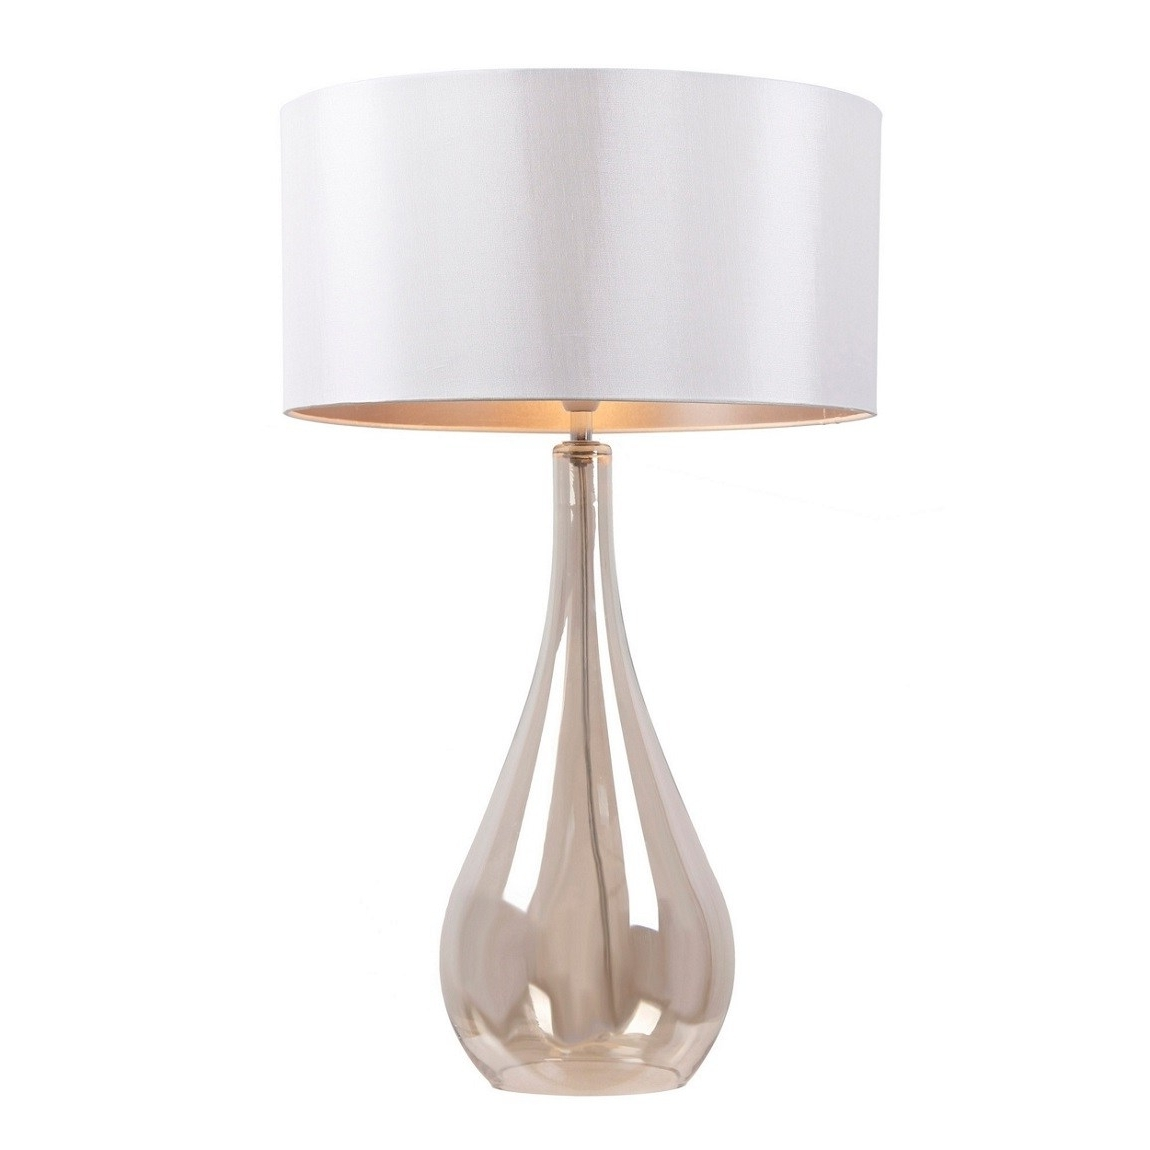 Debenhams Table Lamps For Living Room Regarding Most Recently Released Irresistible Bedroom Uk Tall Table Lamps Canada Sentinel Debenhams (View 7 of 15)